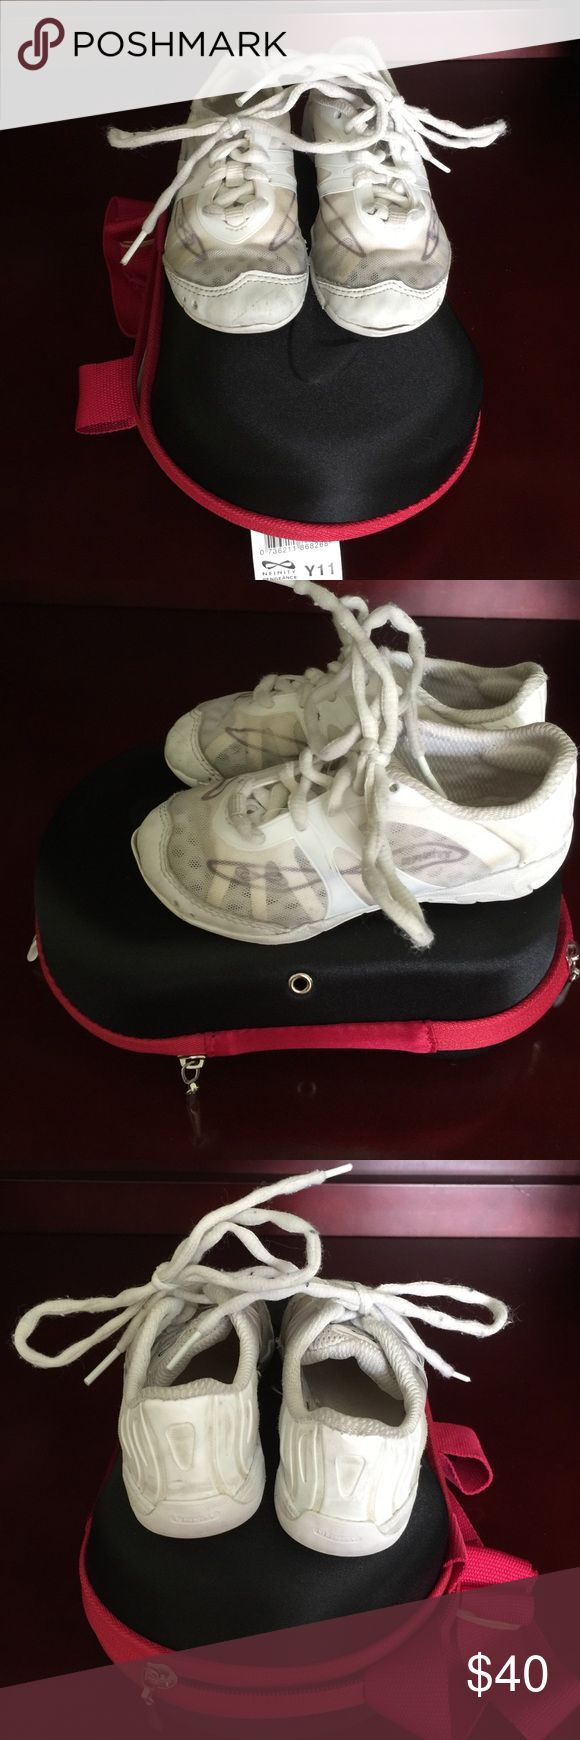 Nfinity vengeance size 11 youth cheer shoe Nfinity vengeance cheer shoe size 11 youth. Some normal wear and tear but still a ton of life left in them. Paid 85$ new. Looking for 40$ Nfinity Shoes Athletic Shoes